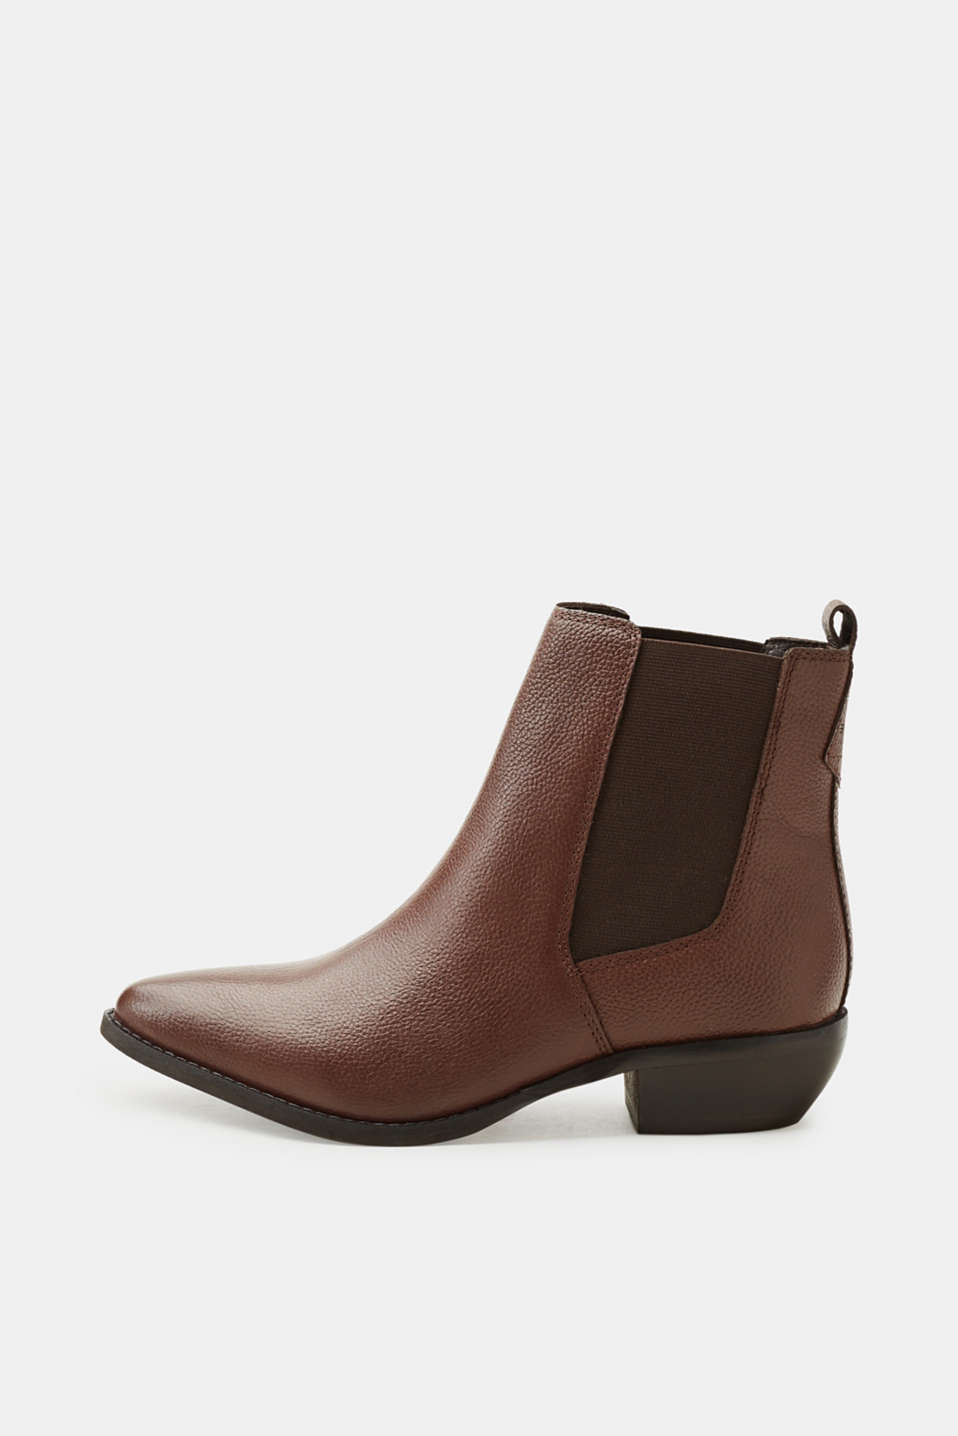 Esprit - Pointed ankle boots made of leather